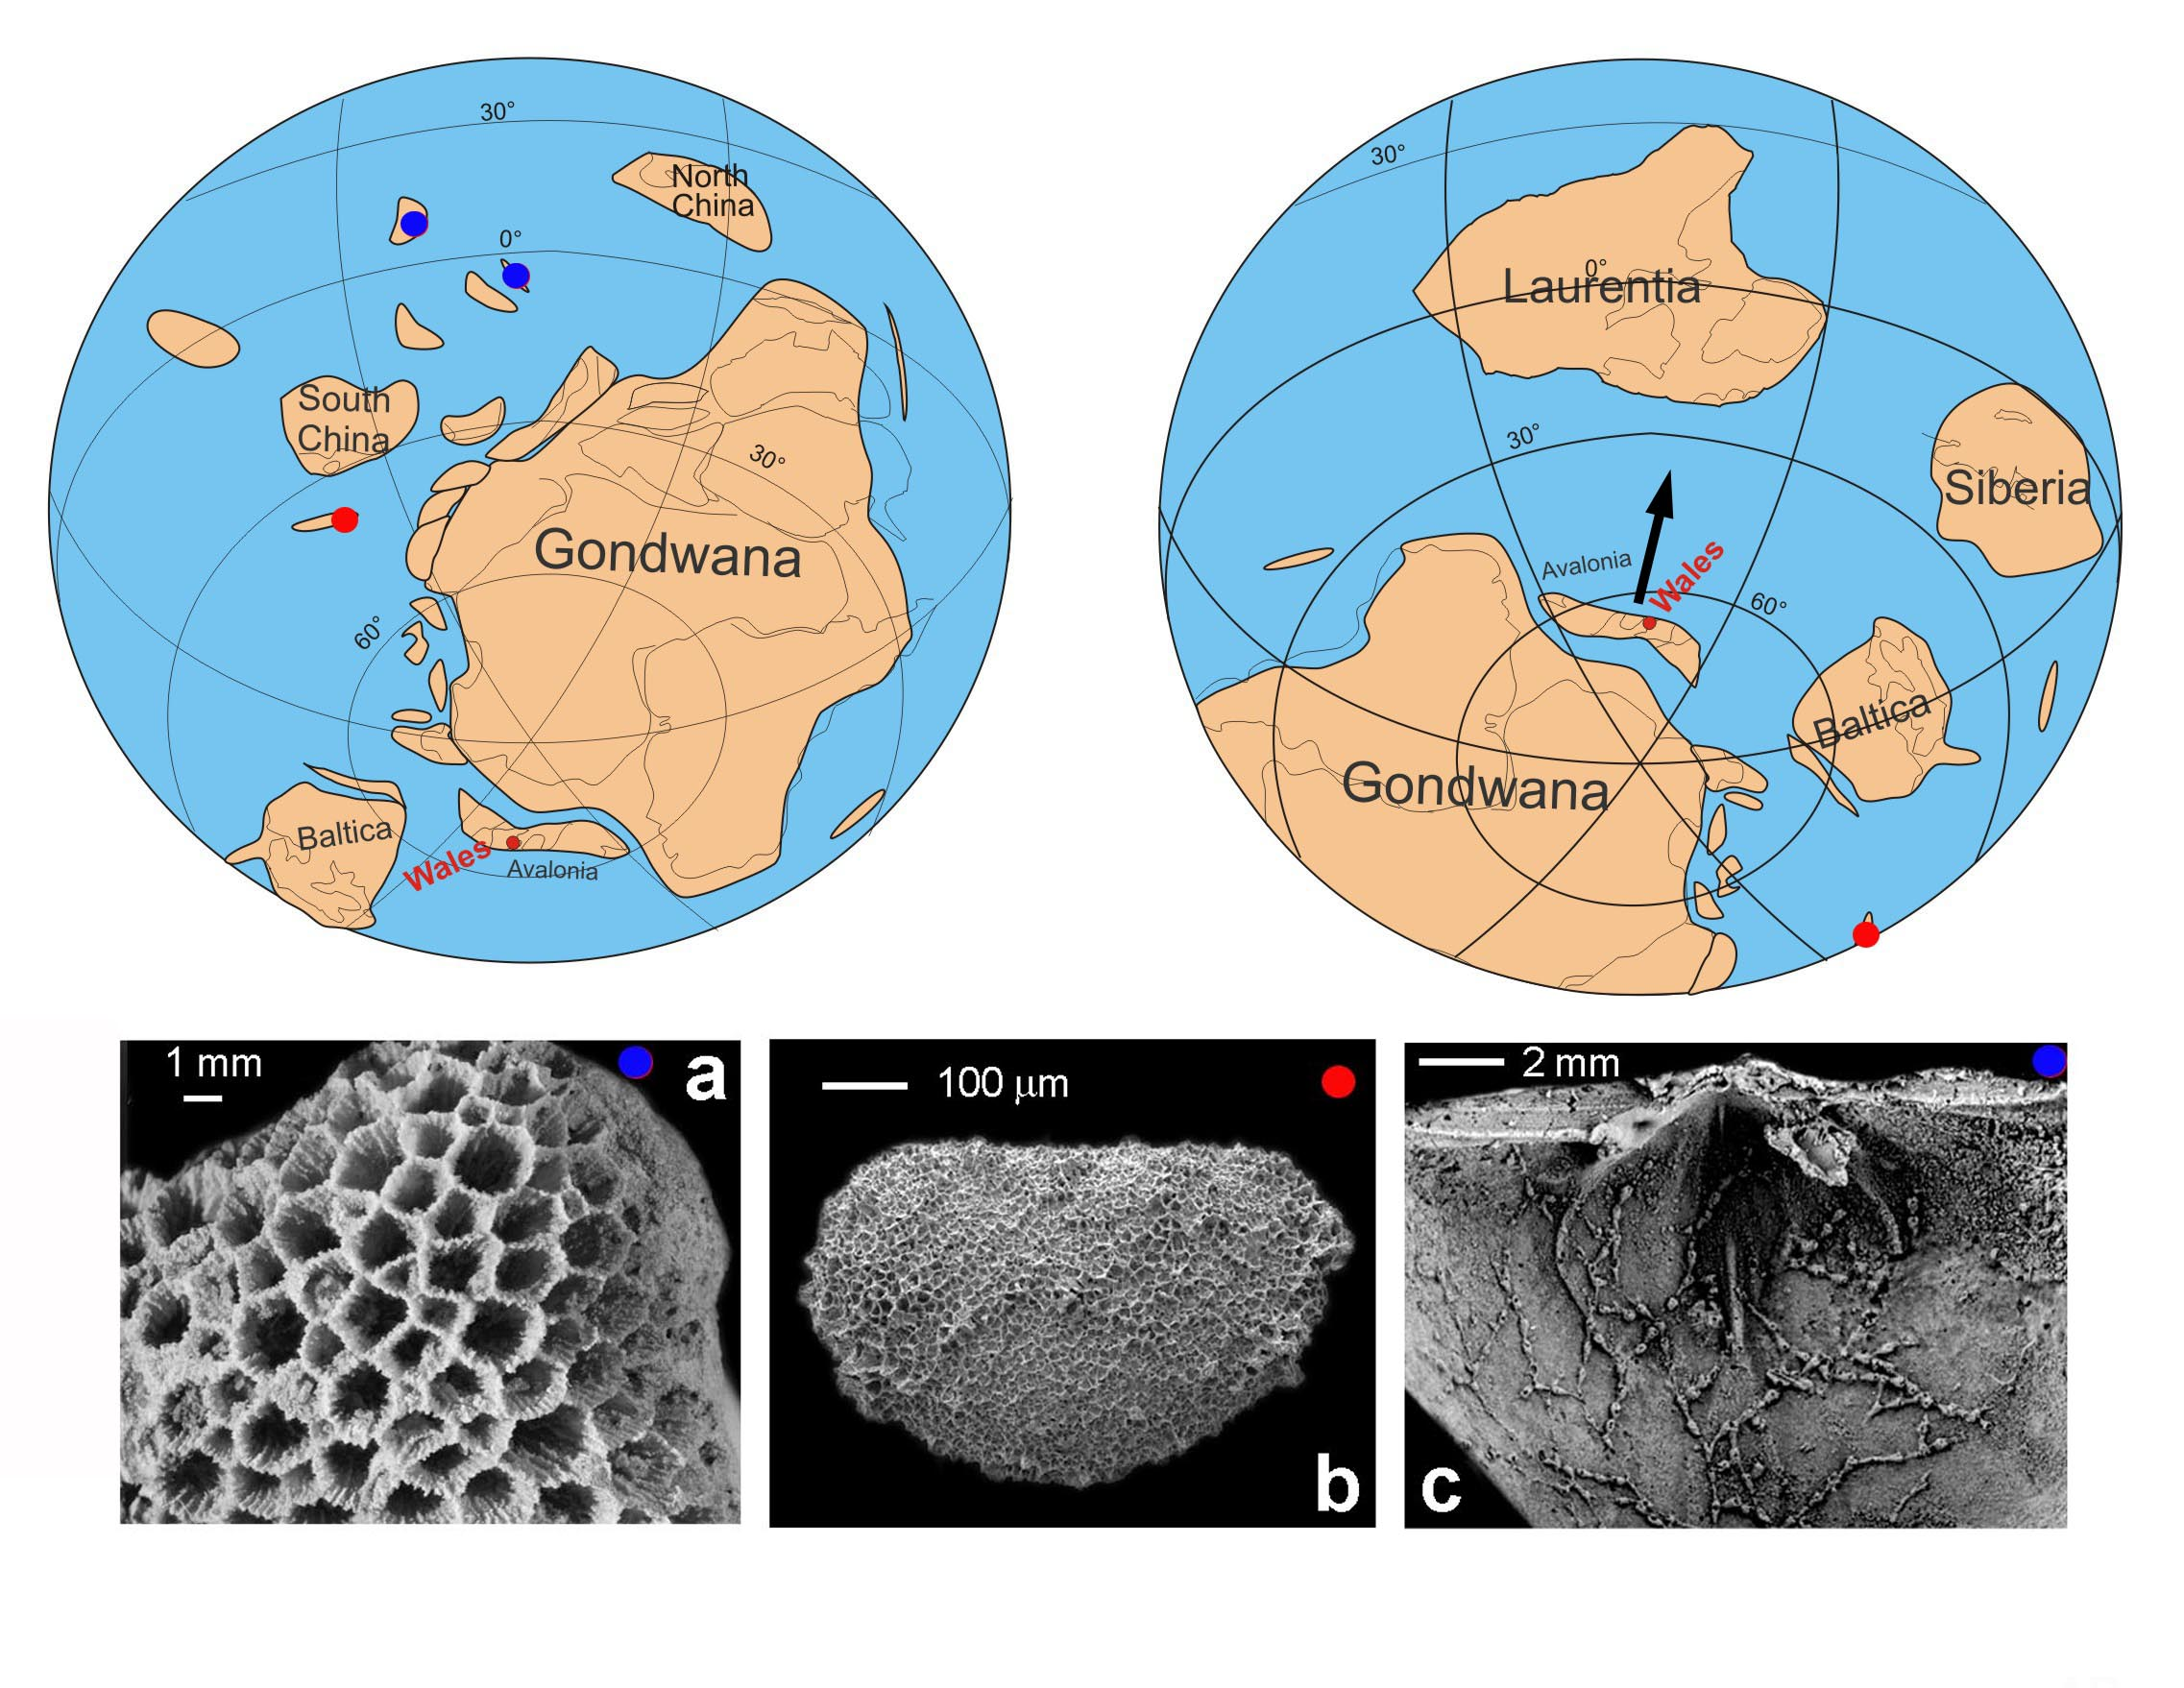 About 480 million years ago, Avalonia separated from Gondwana